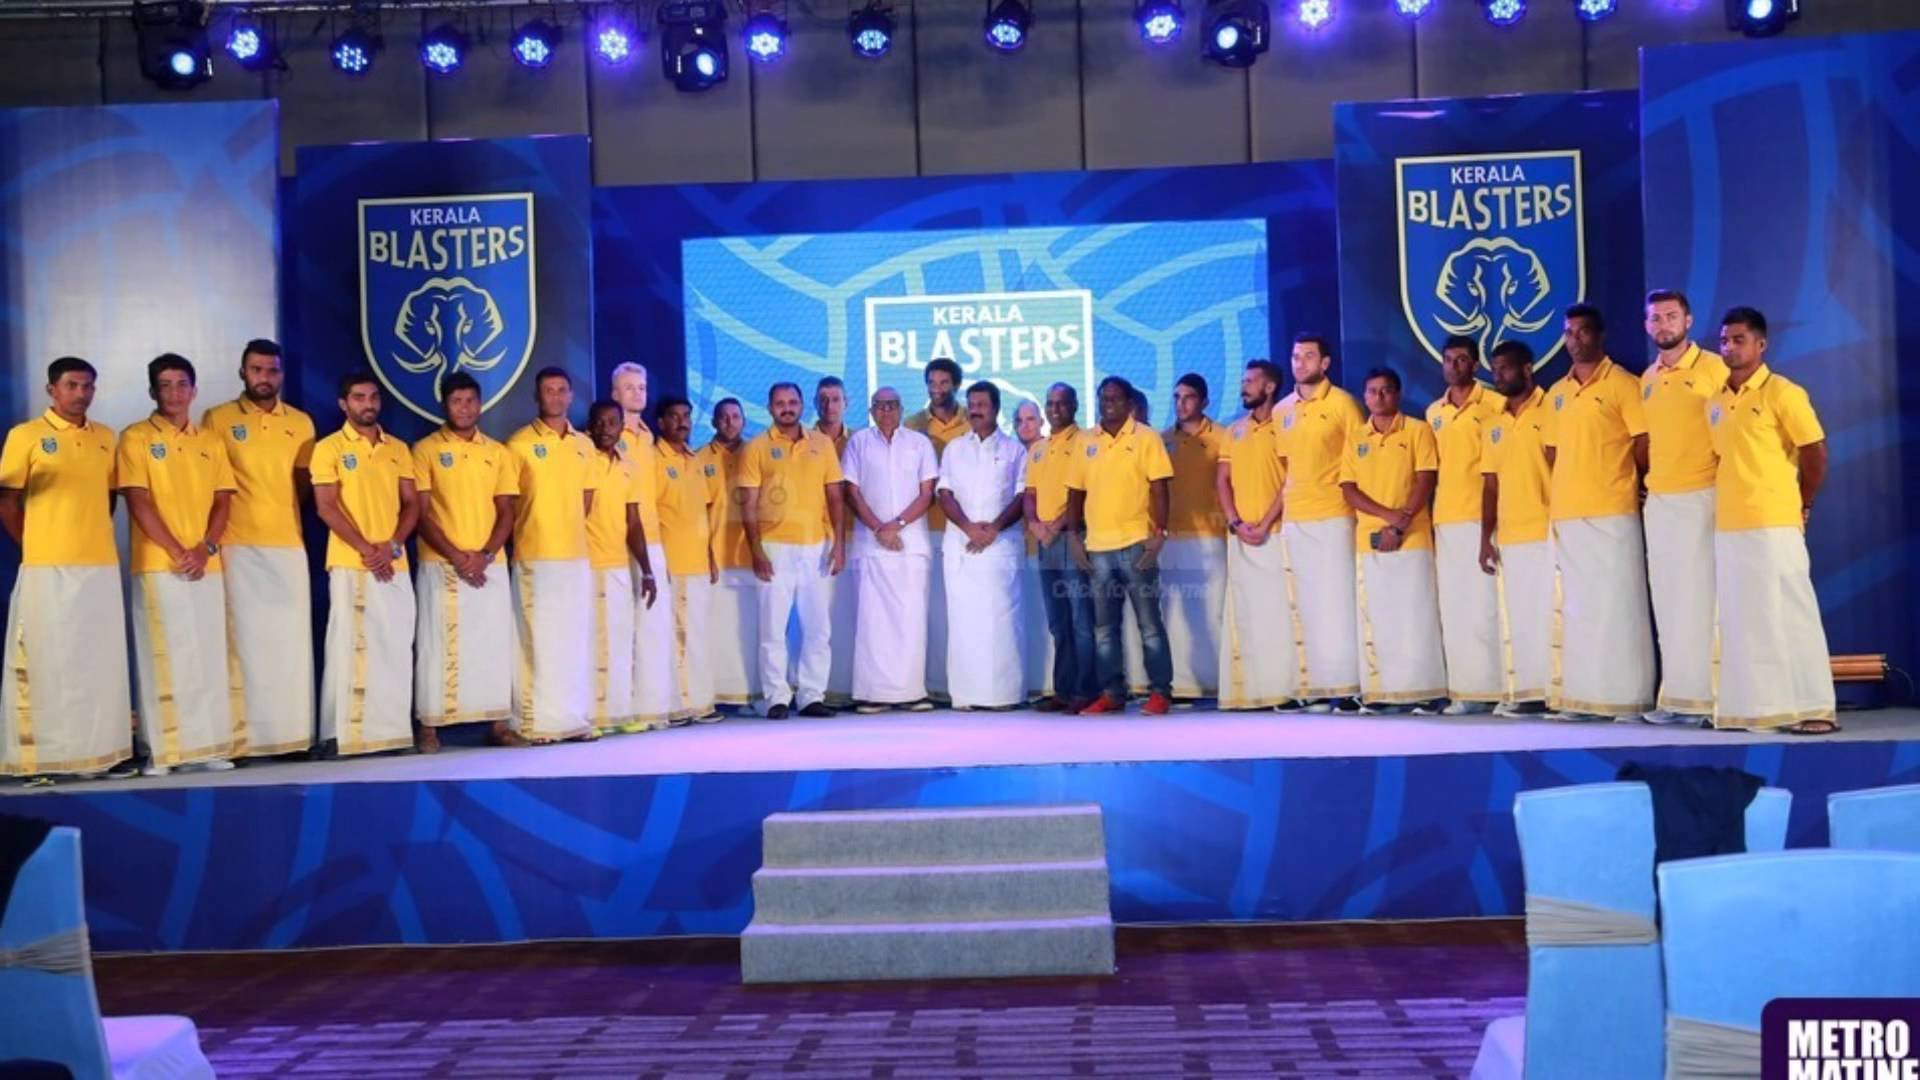 Kerala Blasters Theme Song Official HD - YouTube